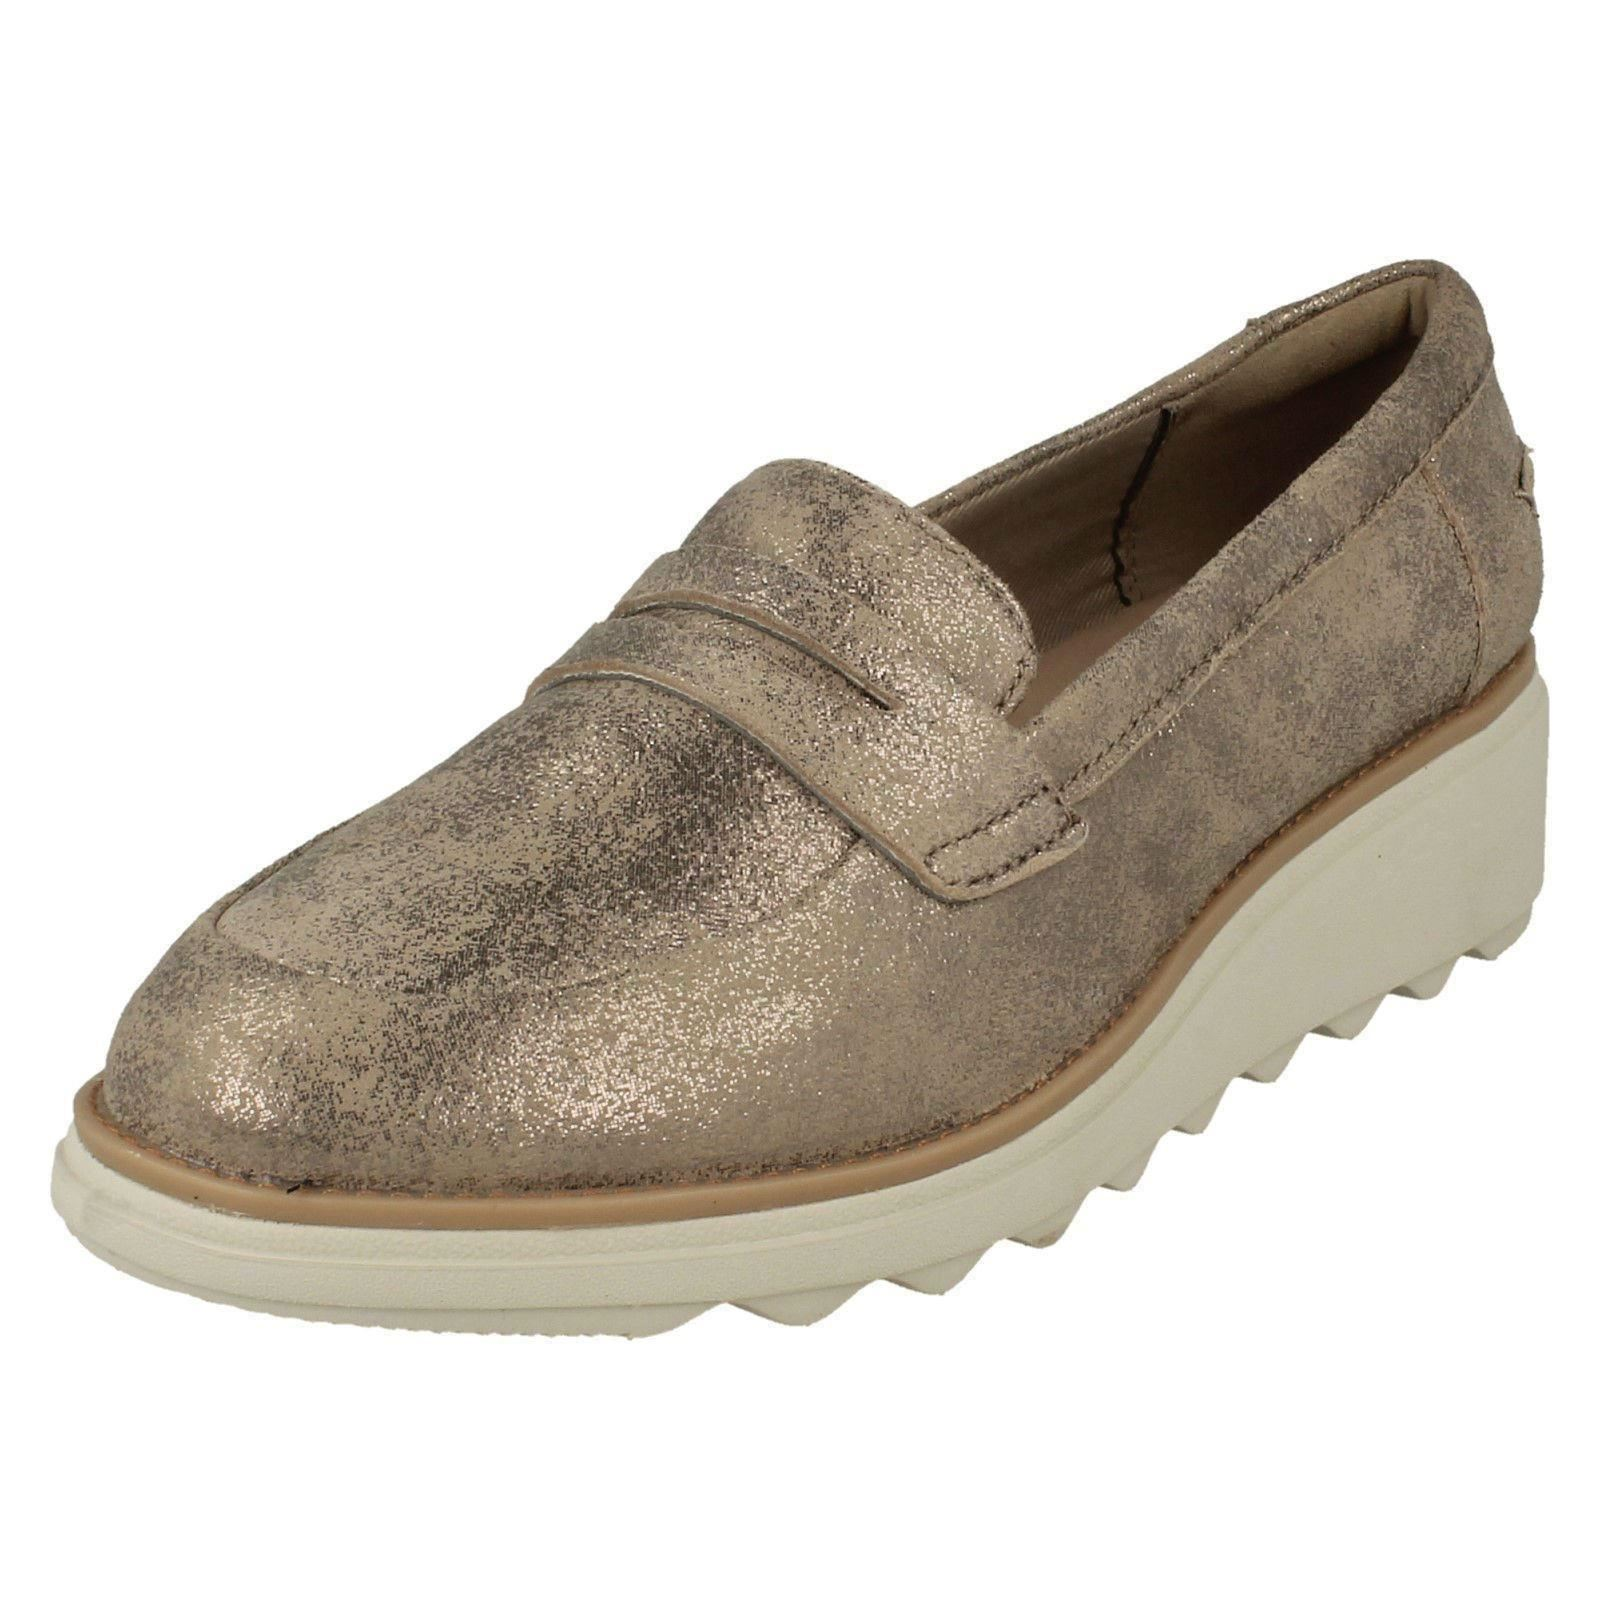 Clarks ladies shoes Sharon Ranch